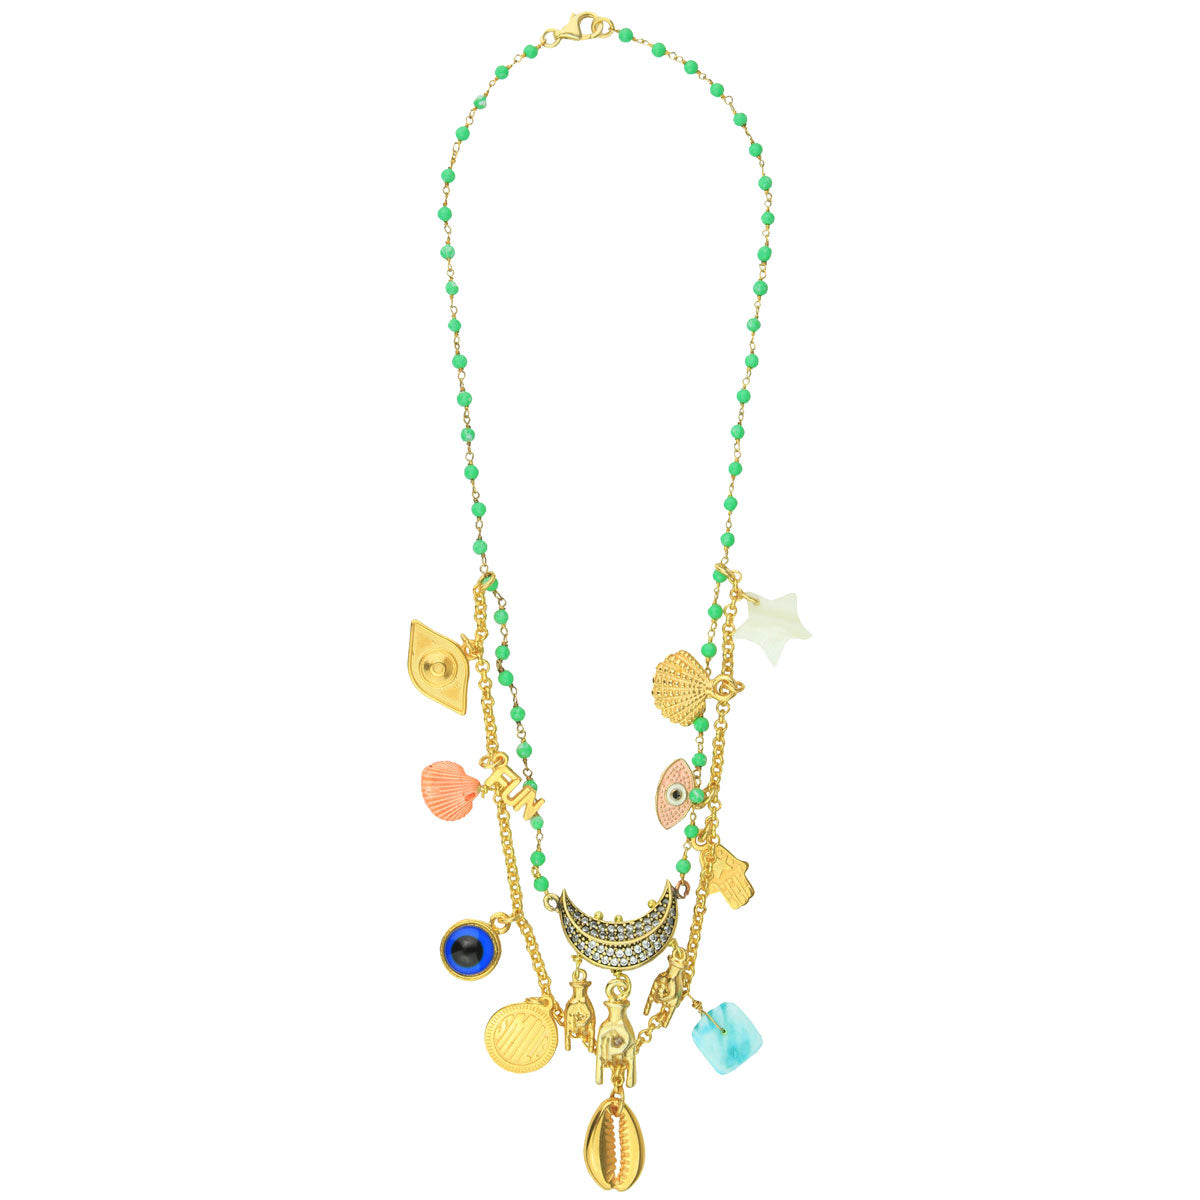 Double row short necklace with charms, shells and stones